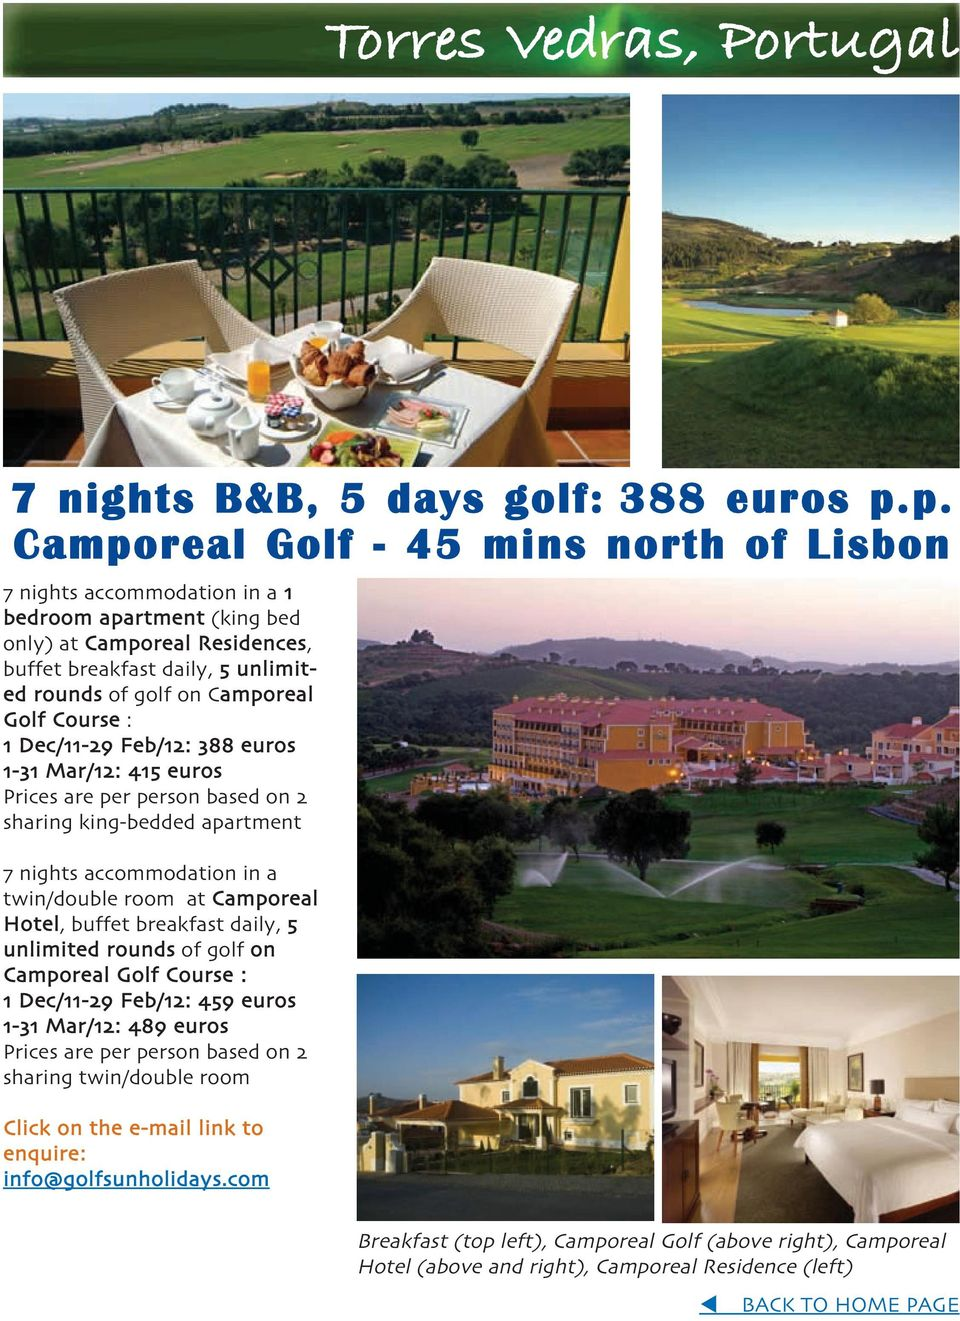 Golf Course : 1 Dec/11-29 Feb/12: 388 euros 1-31 Mar/12: 415 euros Prices are per person based on 2 sharing king-bedded apartment 7 nights accommodation in a twin/double room at Camporeal Hotel,